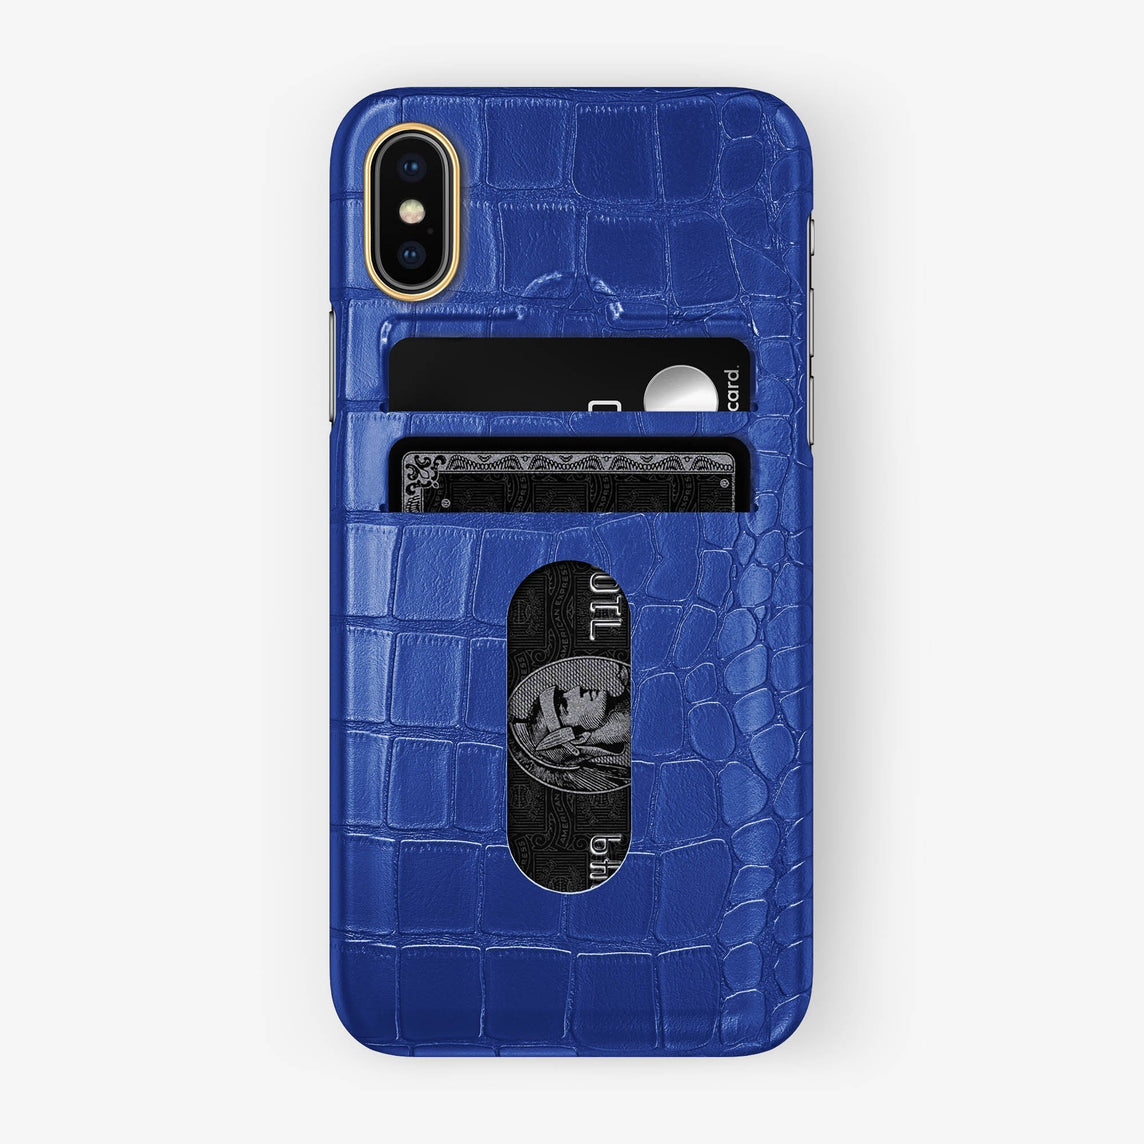 Alligator [iPhone Card Holder Case] [model:iphone-x-case] [colour:peony-blue] [finishing:yellow-gold] - Hadoro